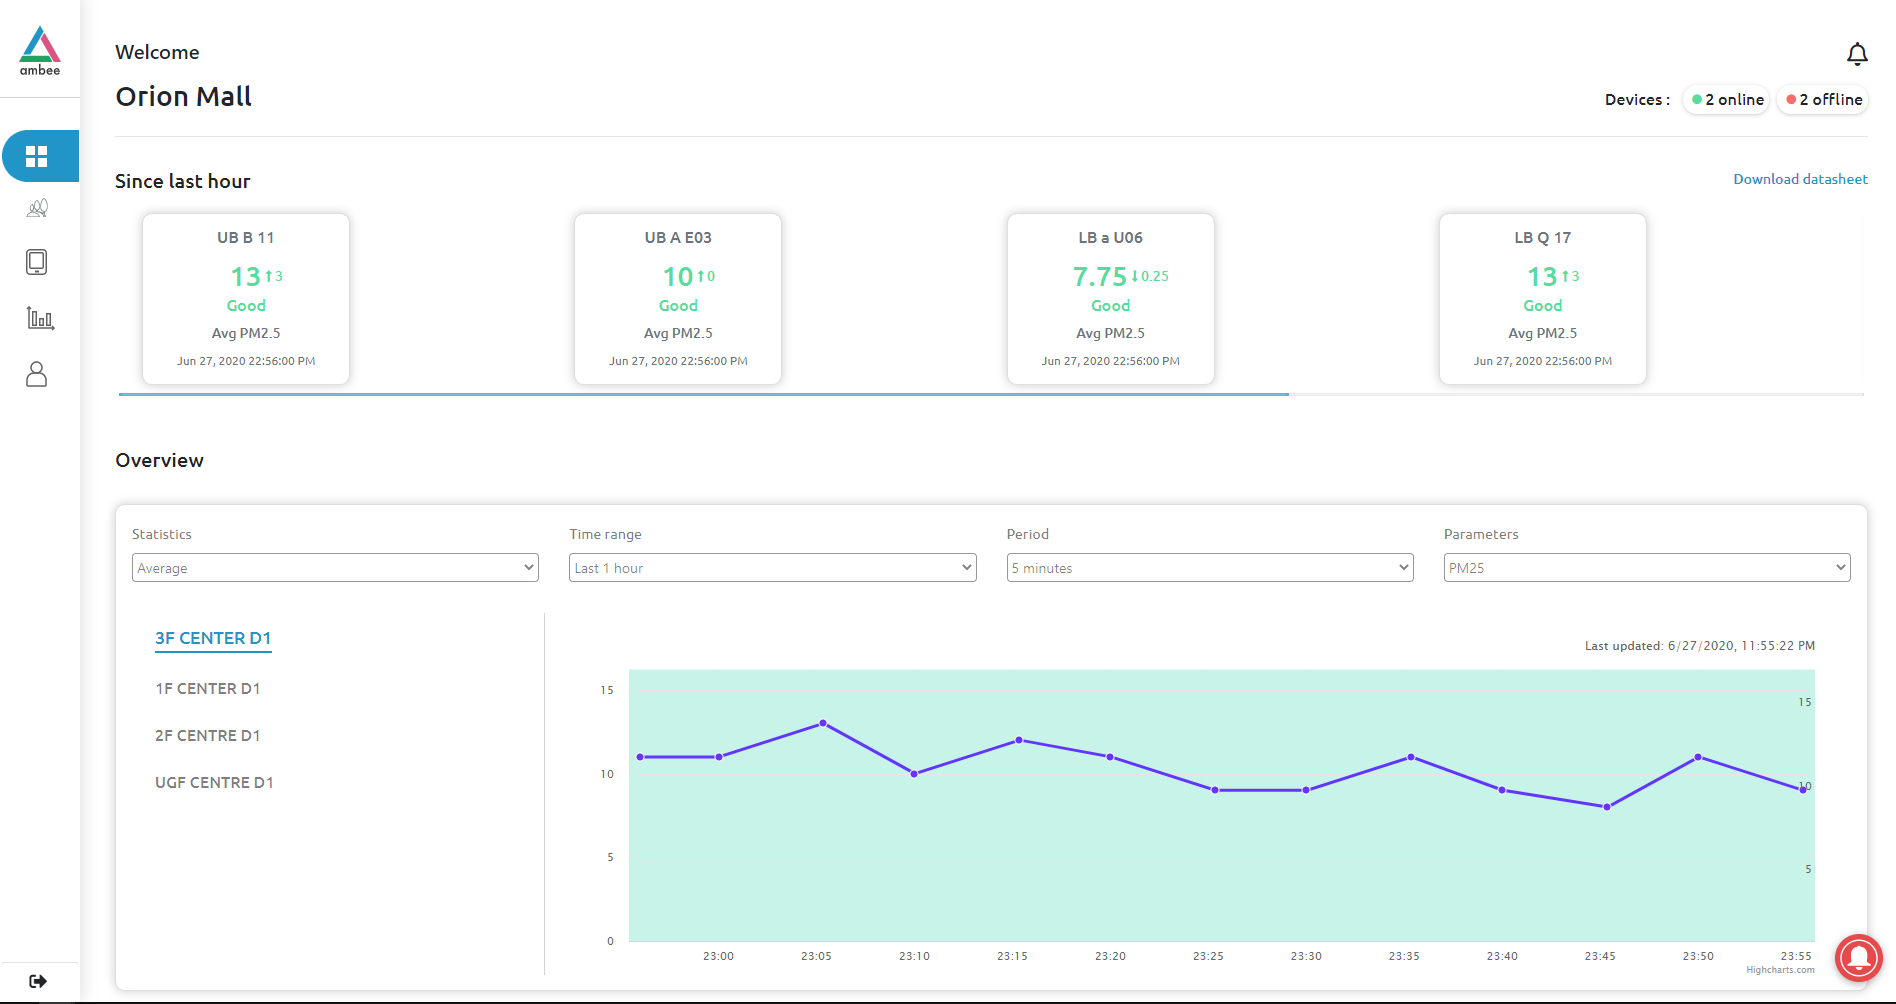 Image from dashboard showing real-time data of a particular room in Orion Mall